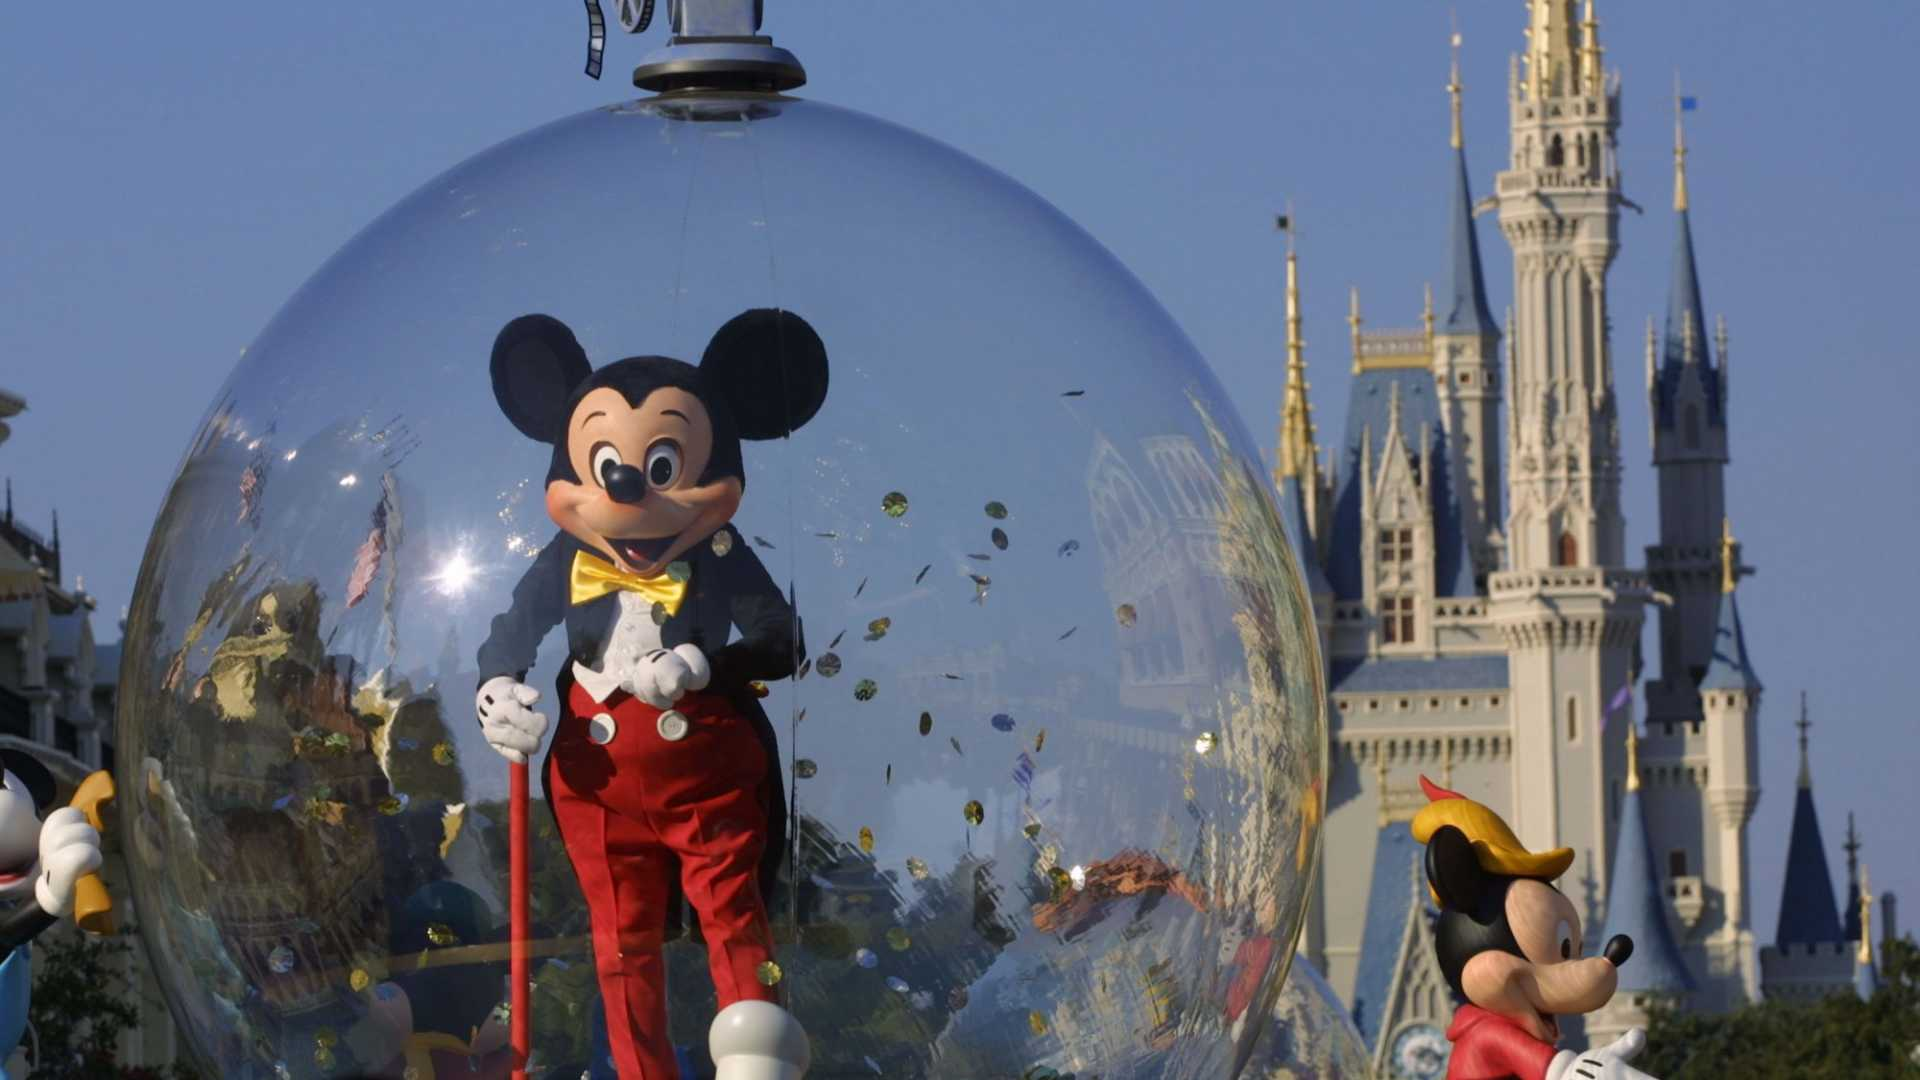 5 Incredible Lessons Your Business Should Learn From Disney